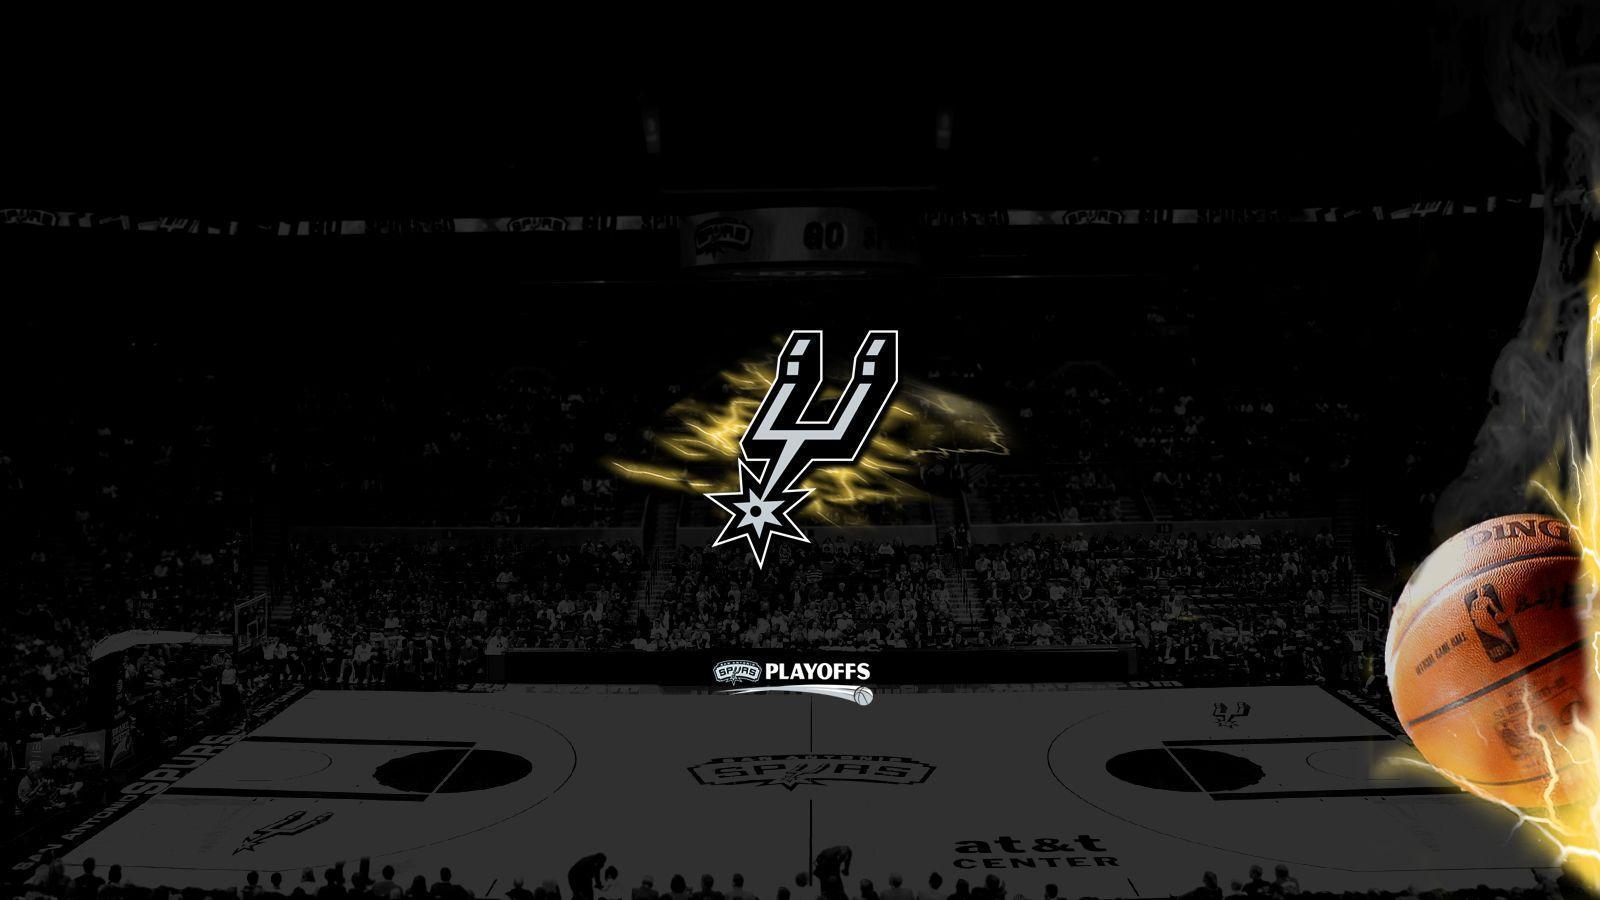 Desktop Playoff Wallpapers | THE OFFICIAL SITE OF THE SAN ANTONIO ...